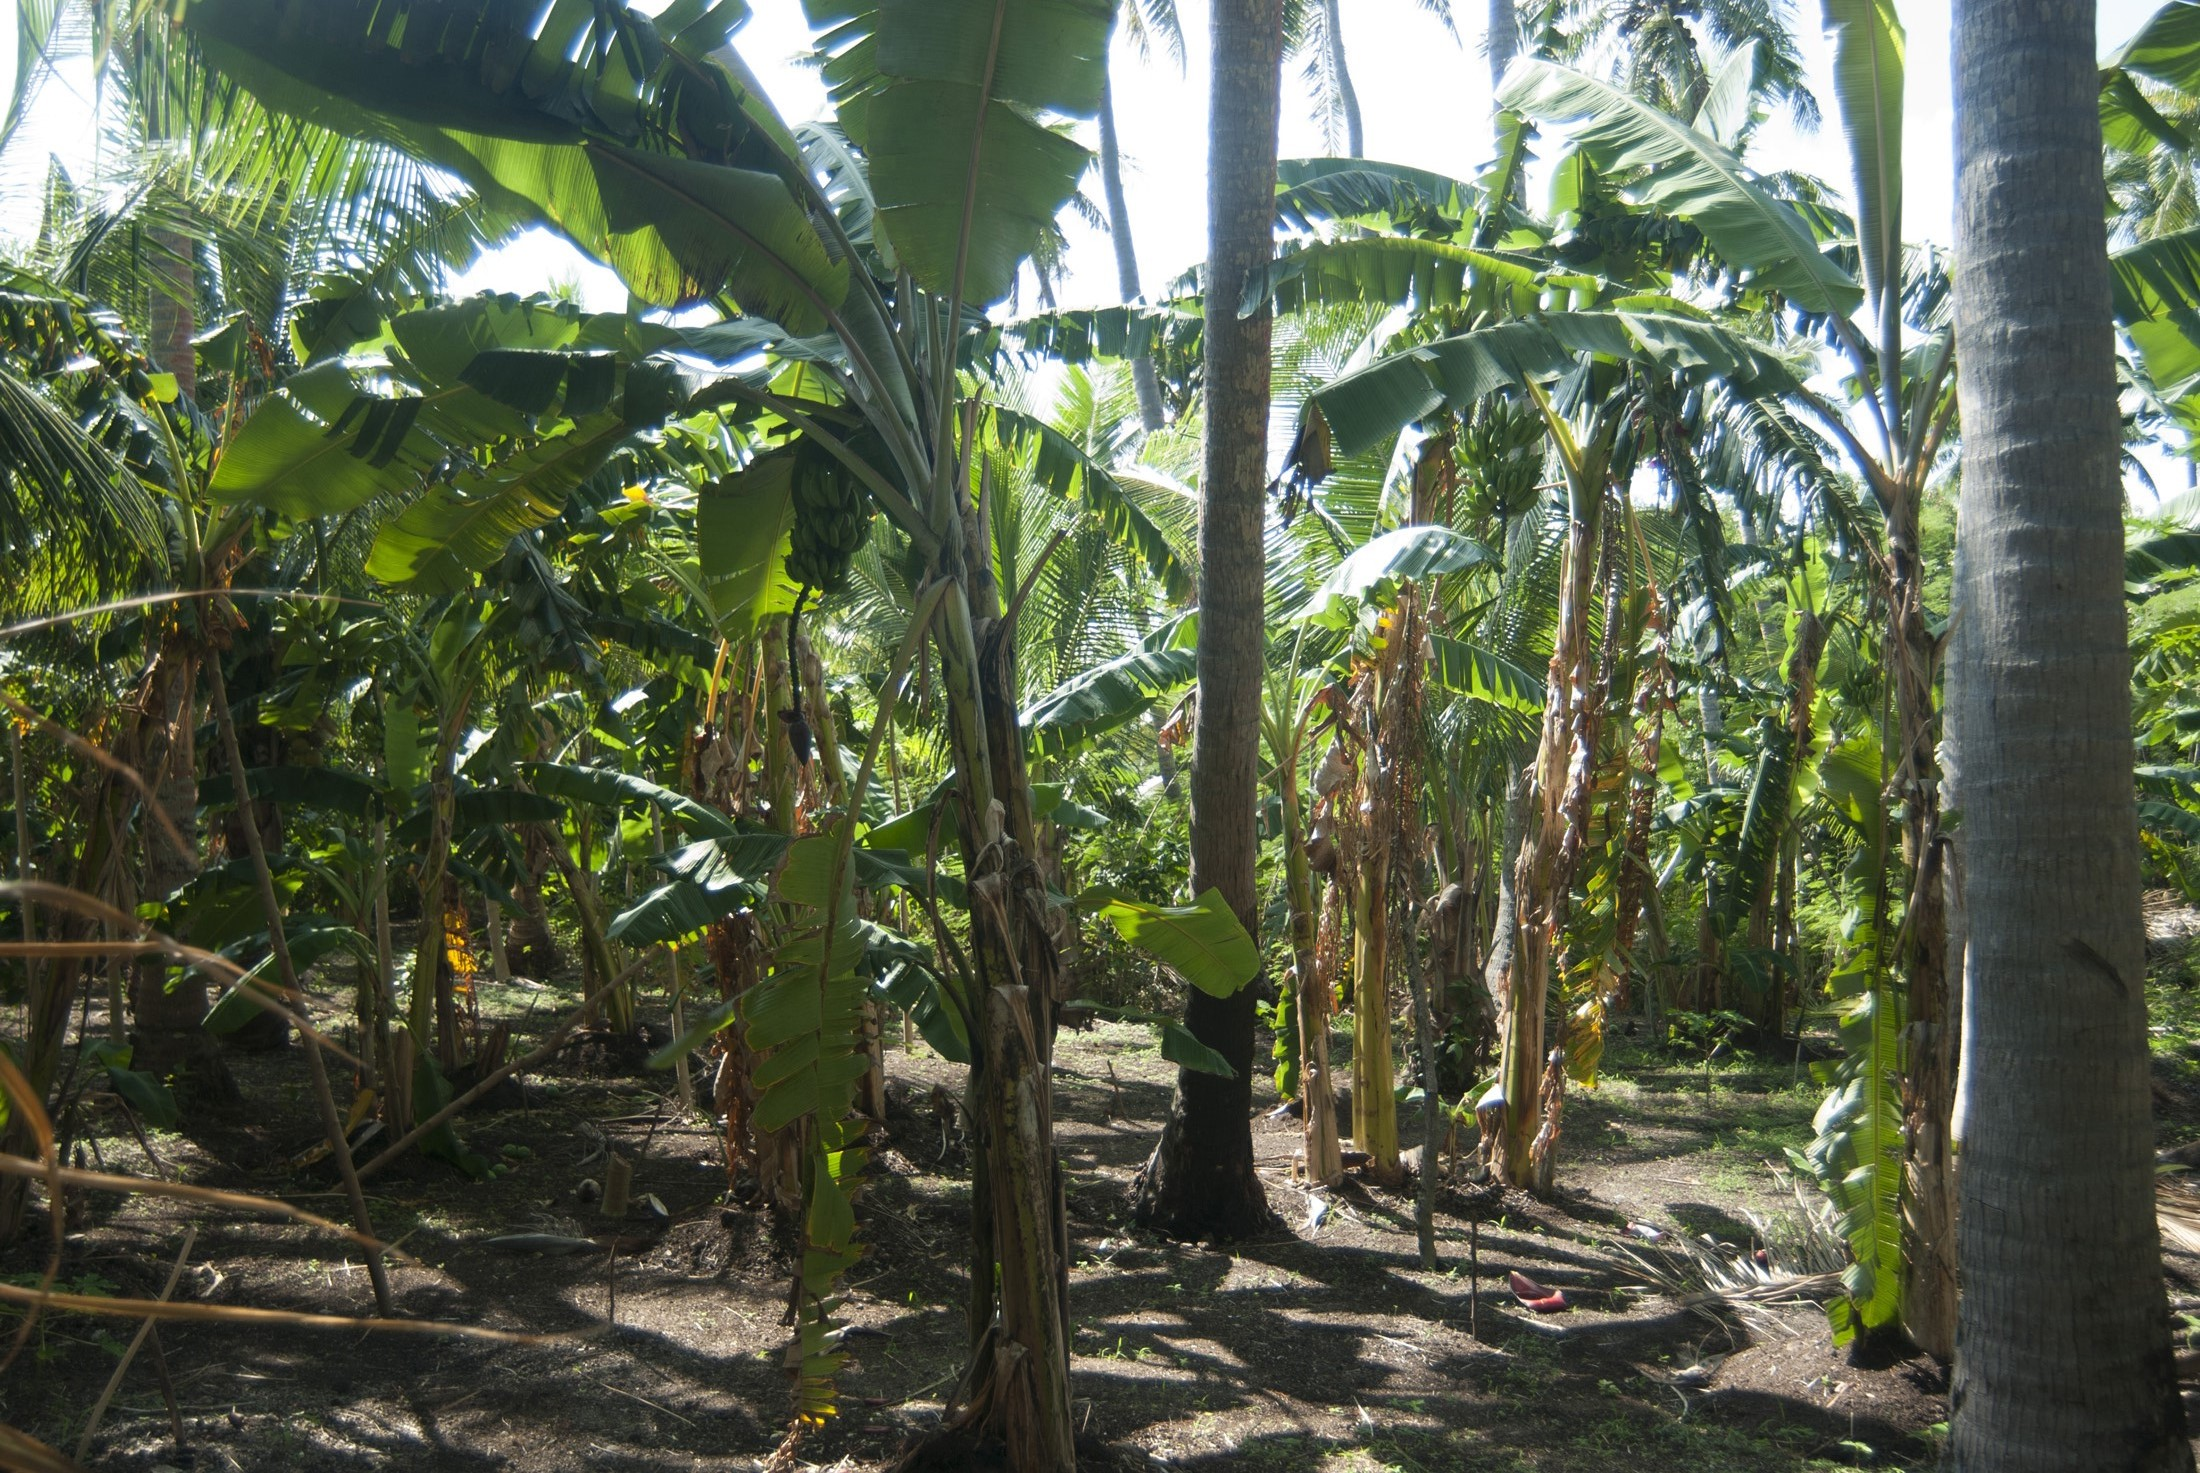 Banana palm plantation in Fiji cultivating fresh fruit on a farm for the global market